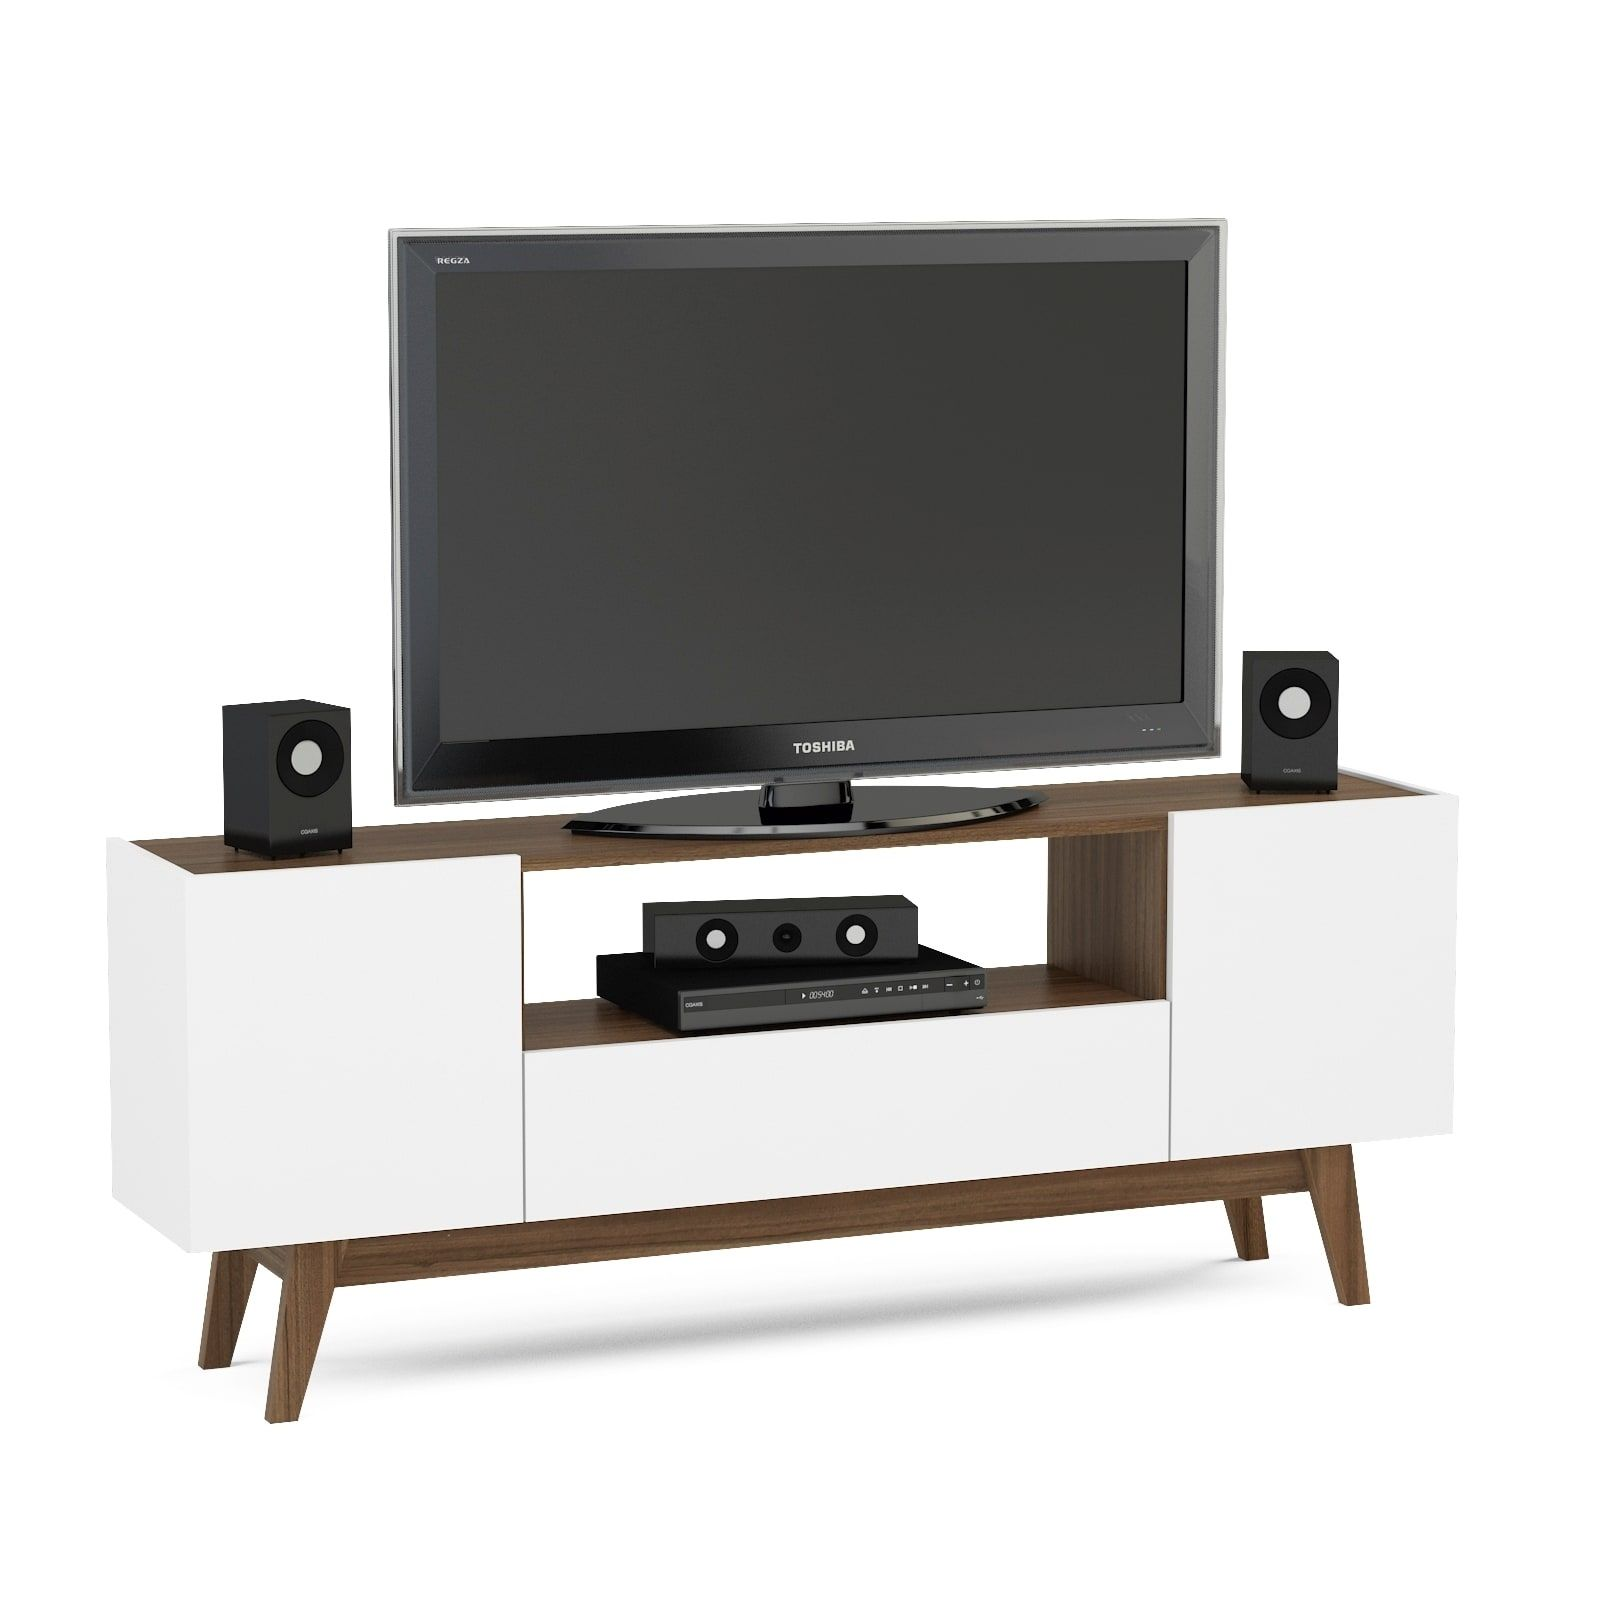 Boahaus White and Brown Wood 60inch TV Stand Overstockcom